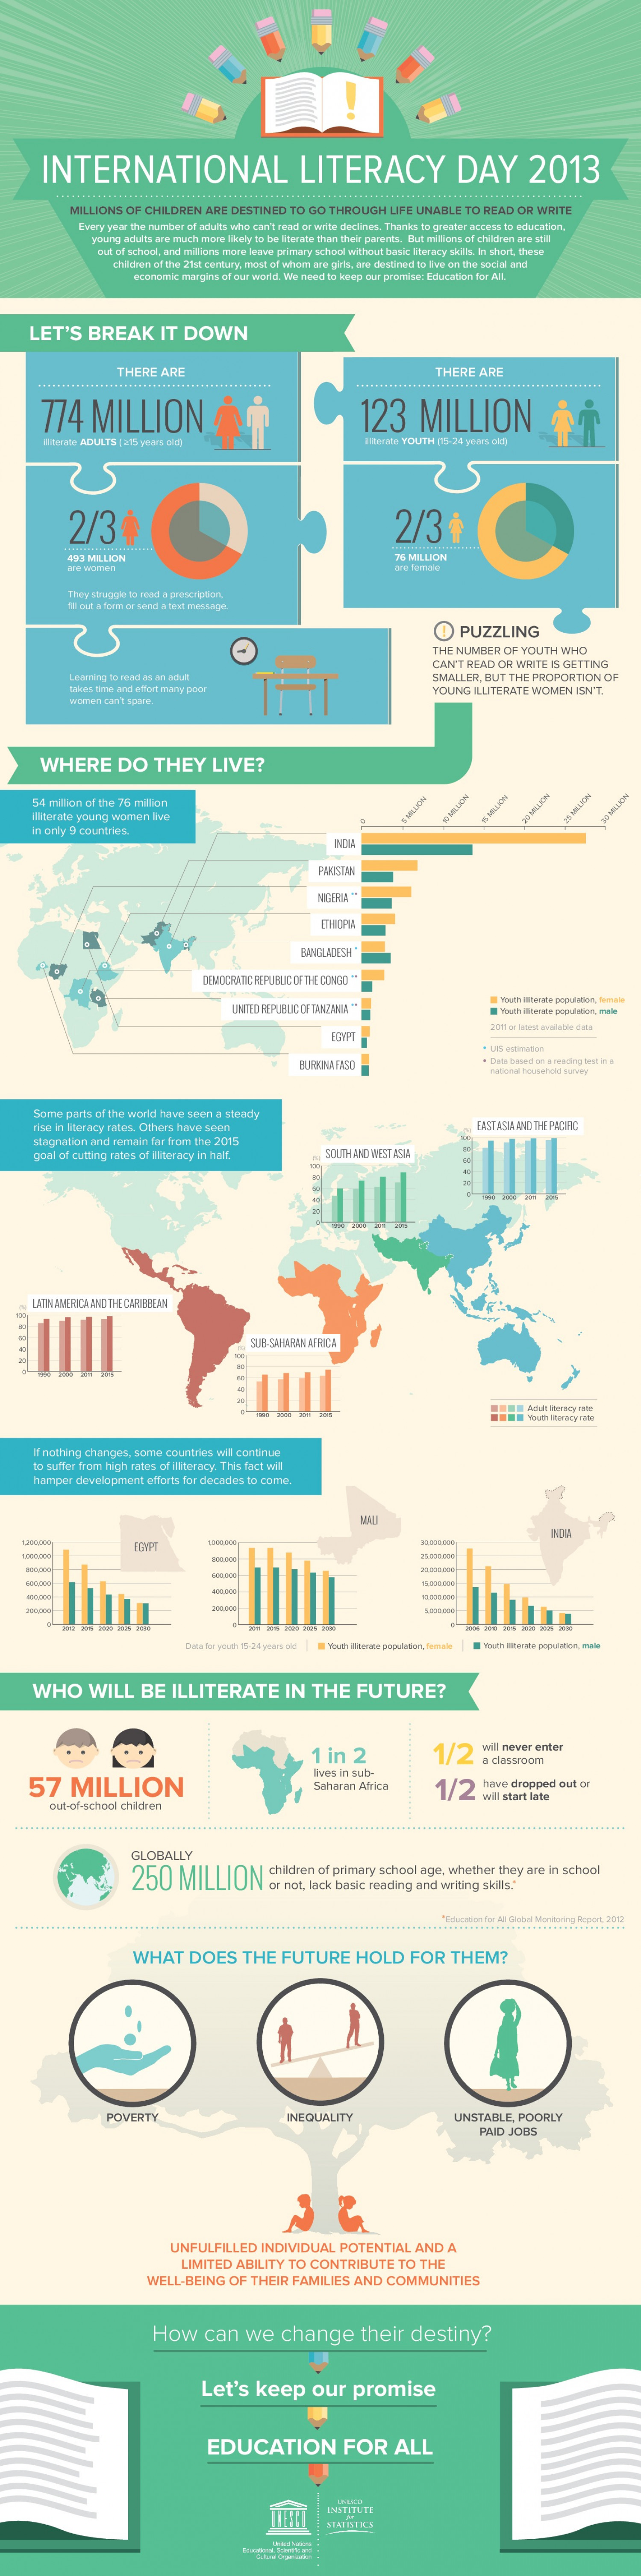 International Literacy Data Infographic